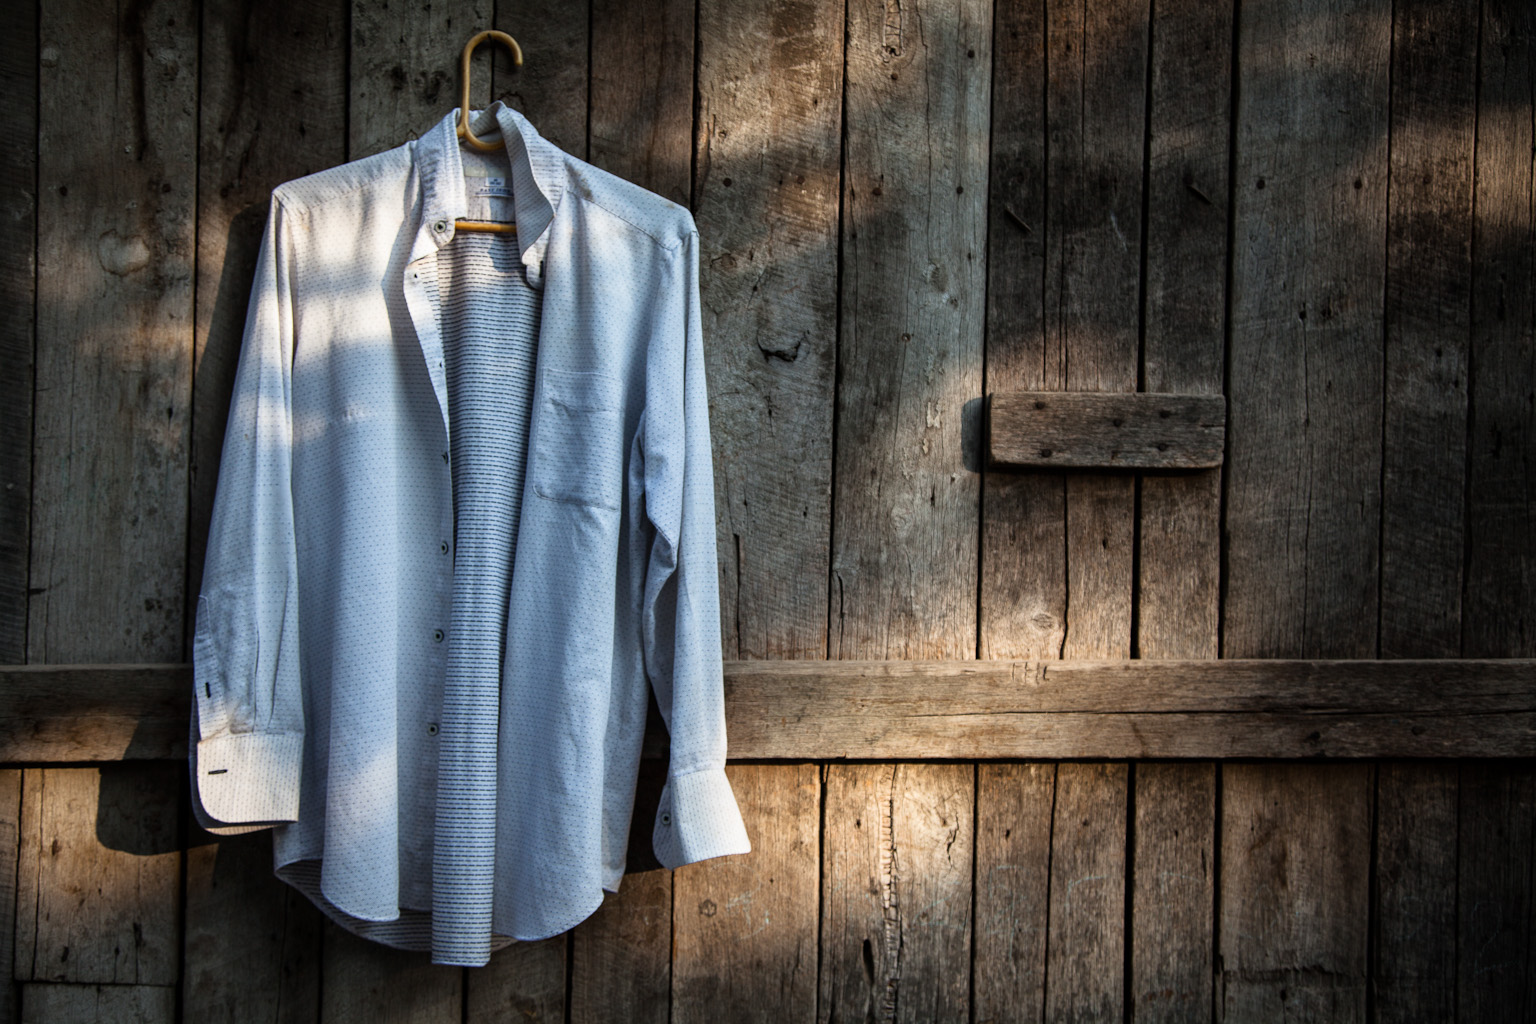 Image result for hanger with shirt